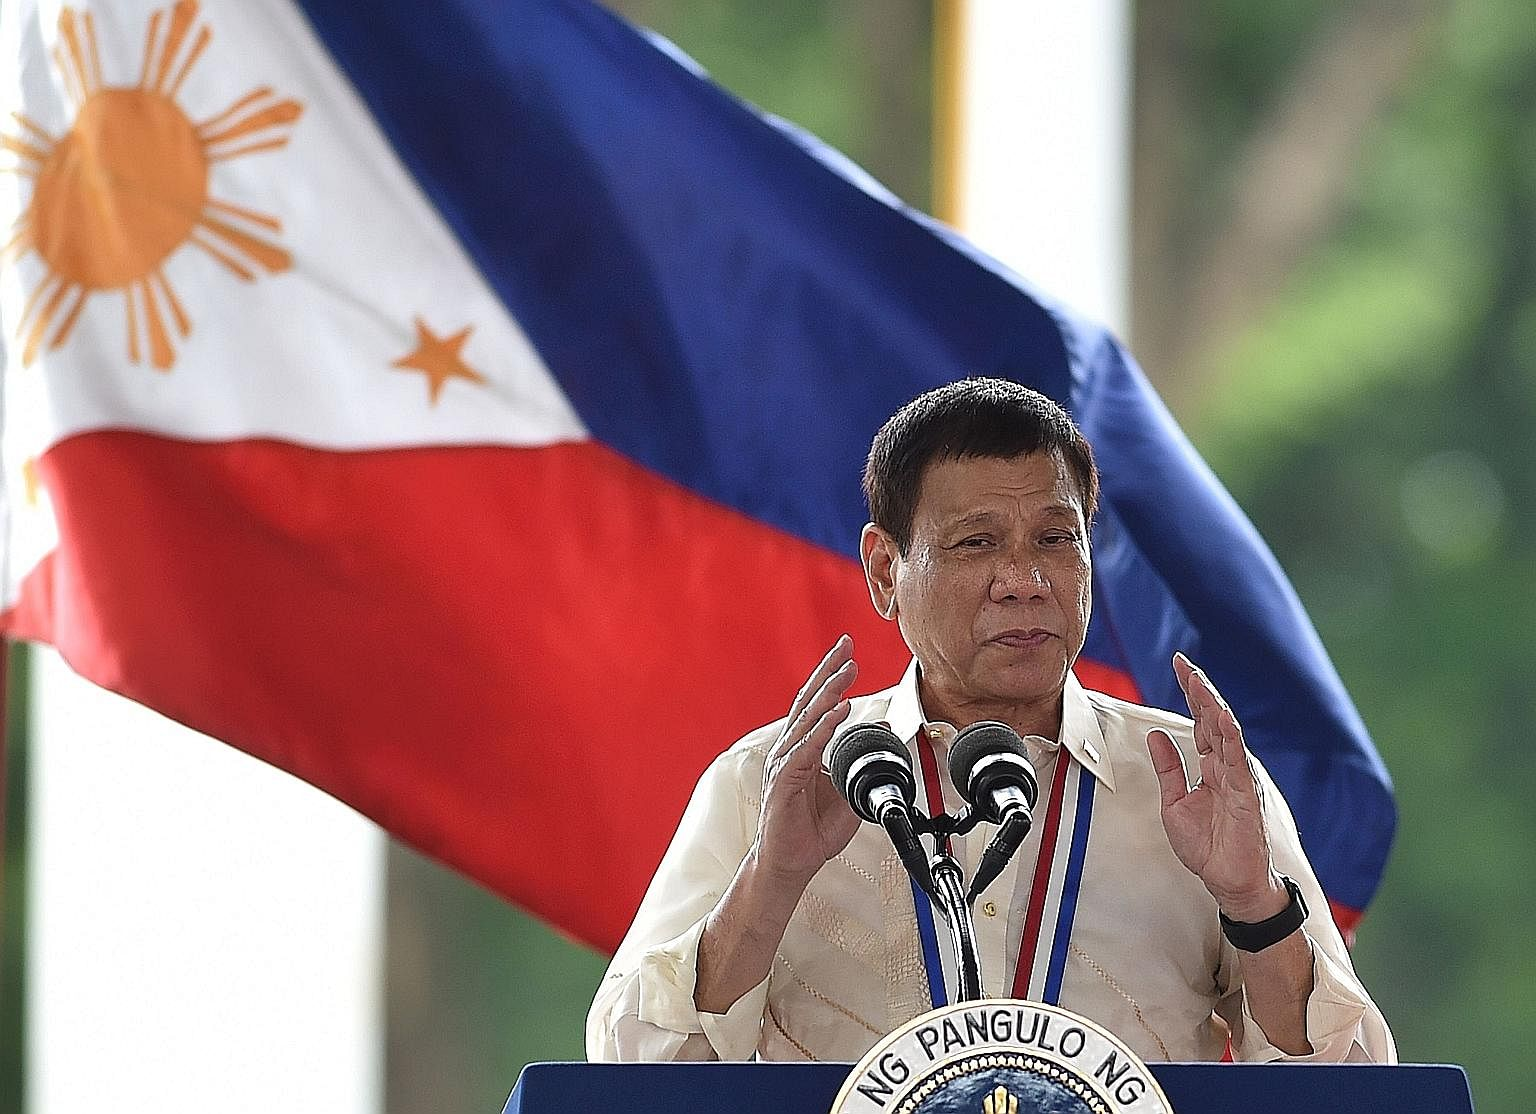 President Duterte's administration is not only interested in rebuilding frayed ties with China, which has dangled large-scale infrastructure investments among other incentives, but is also calling for a more independent Philippine foreign policy whic